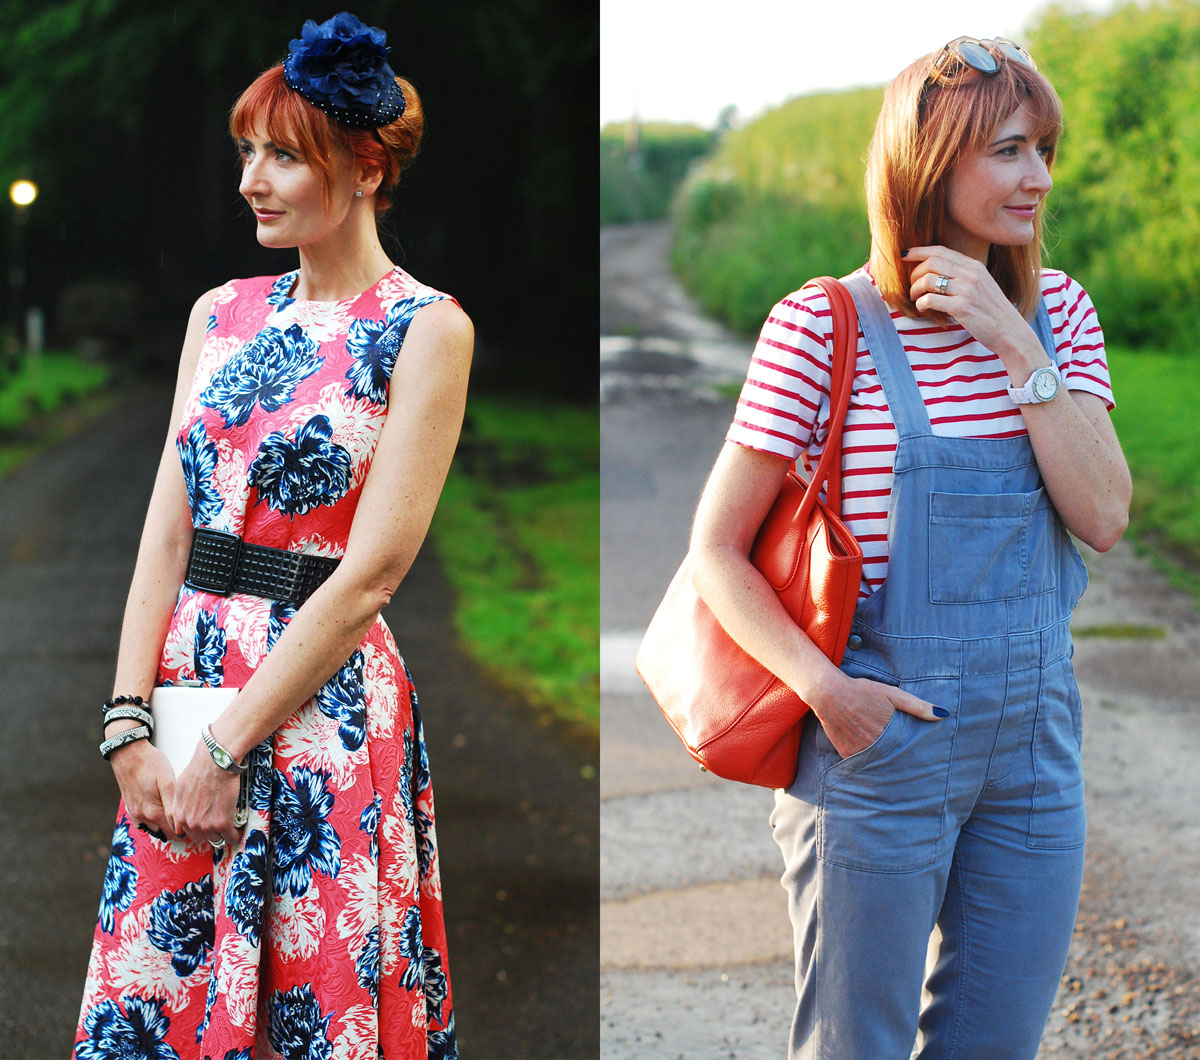 Now Women Are Criticising Other Women For Changing Their Style #SaturdayShareLinkUp